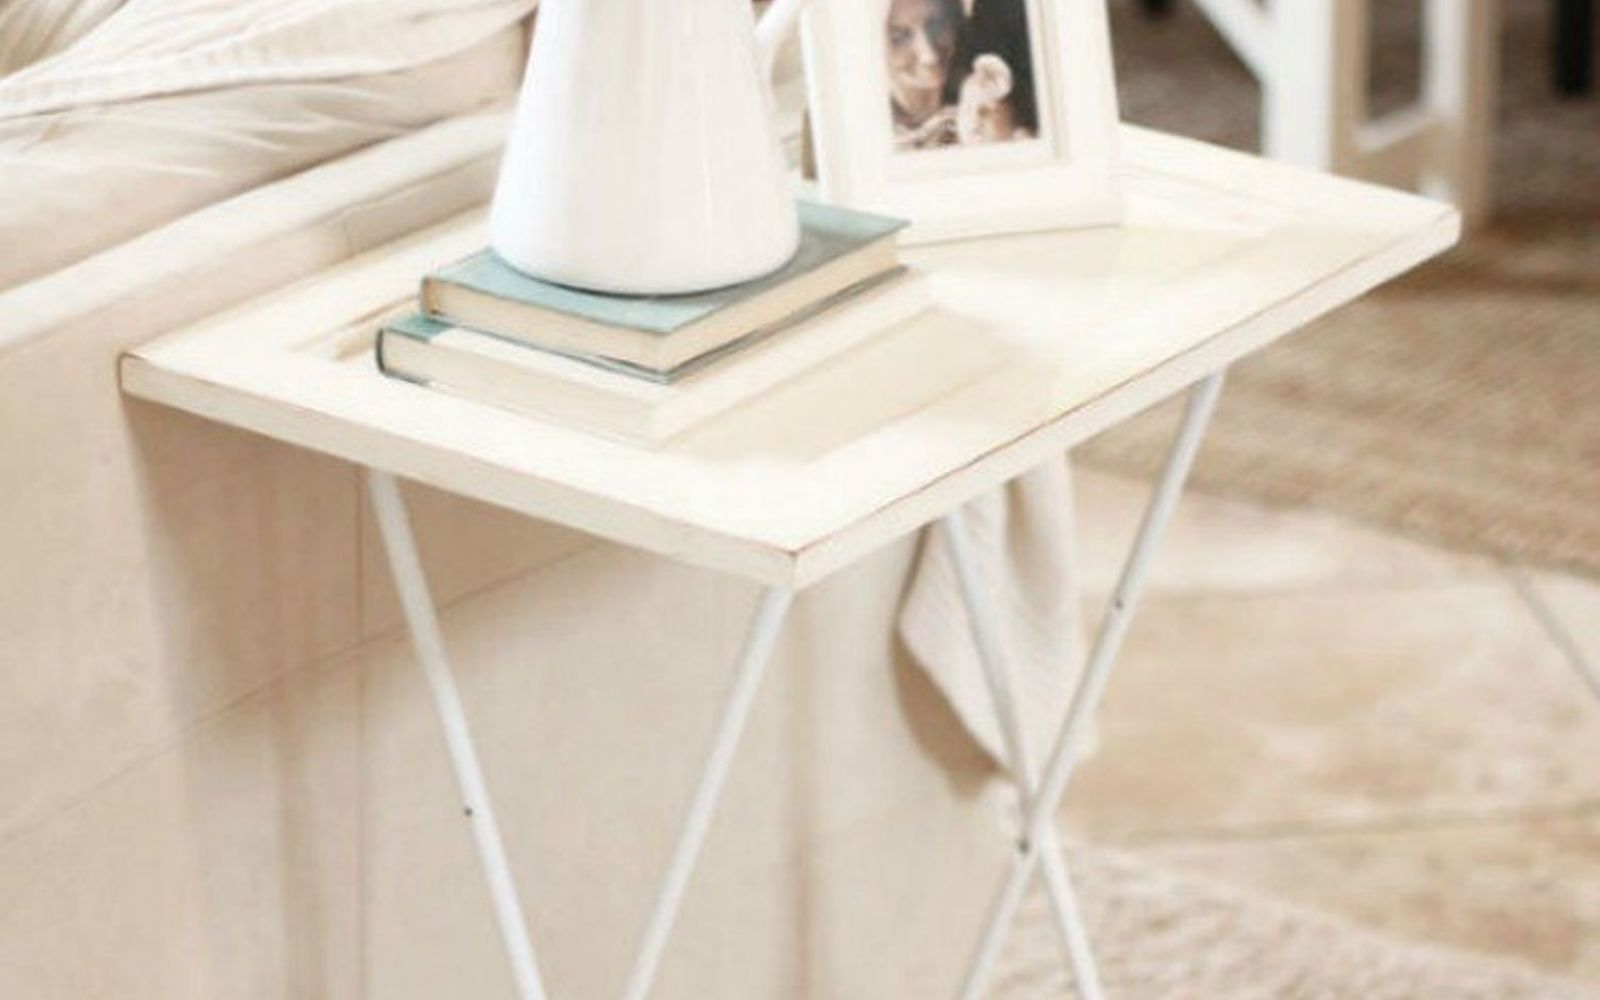 s rip off your cabinet doors for these brilliant upcycling ideas, Add some legs for a chic side table